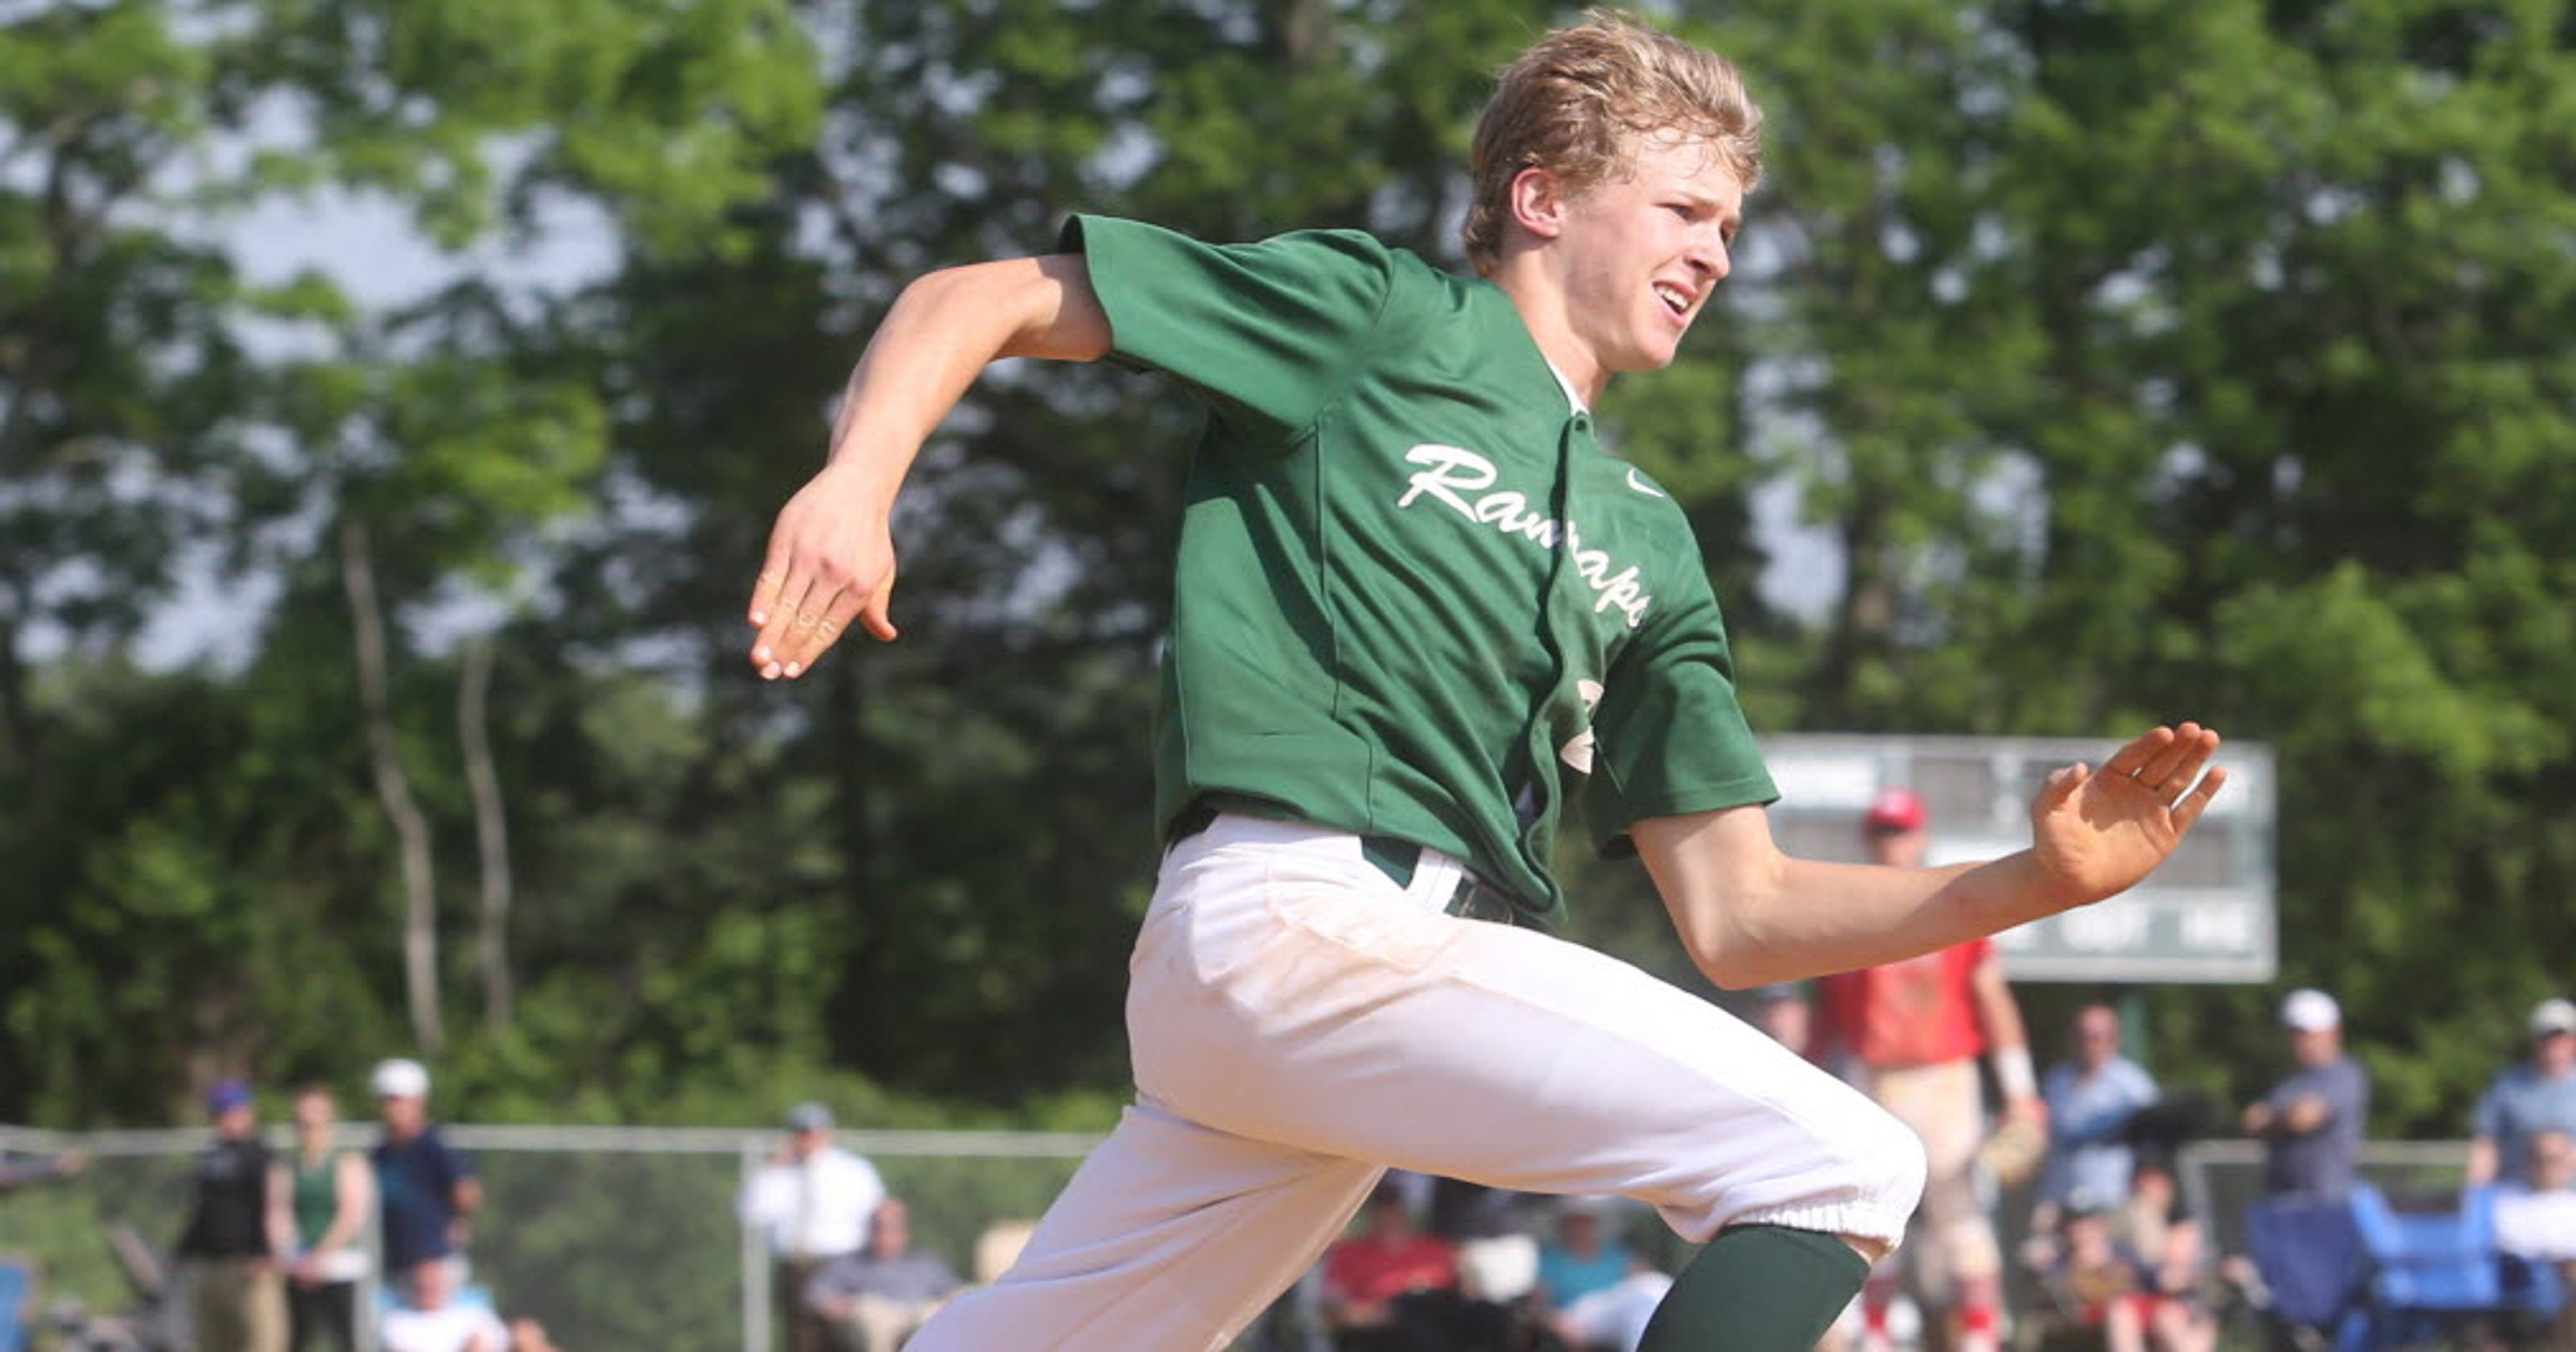 K C  Hunt of Ramapo High School was born to play baseball